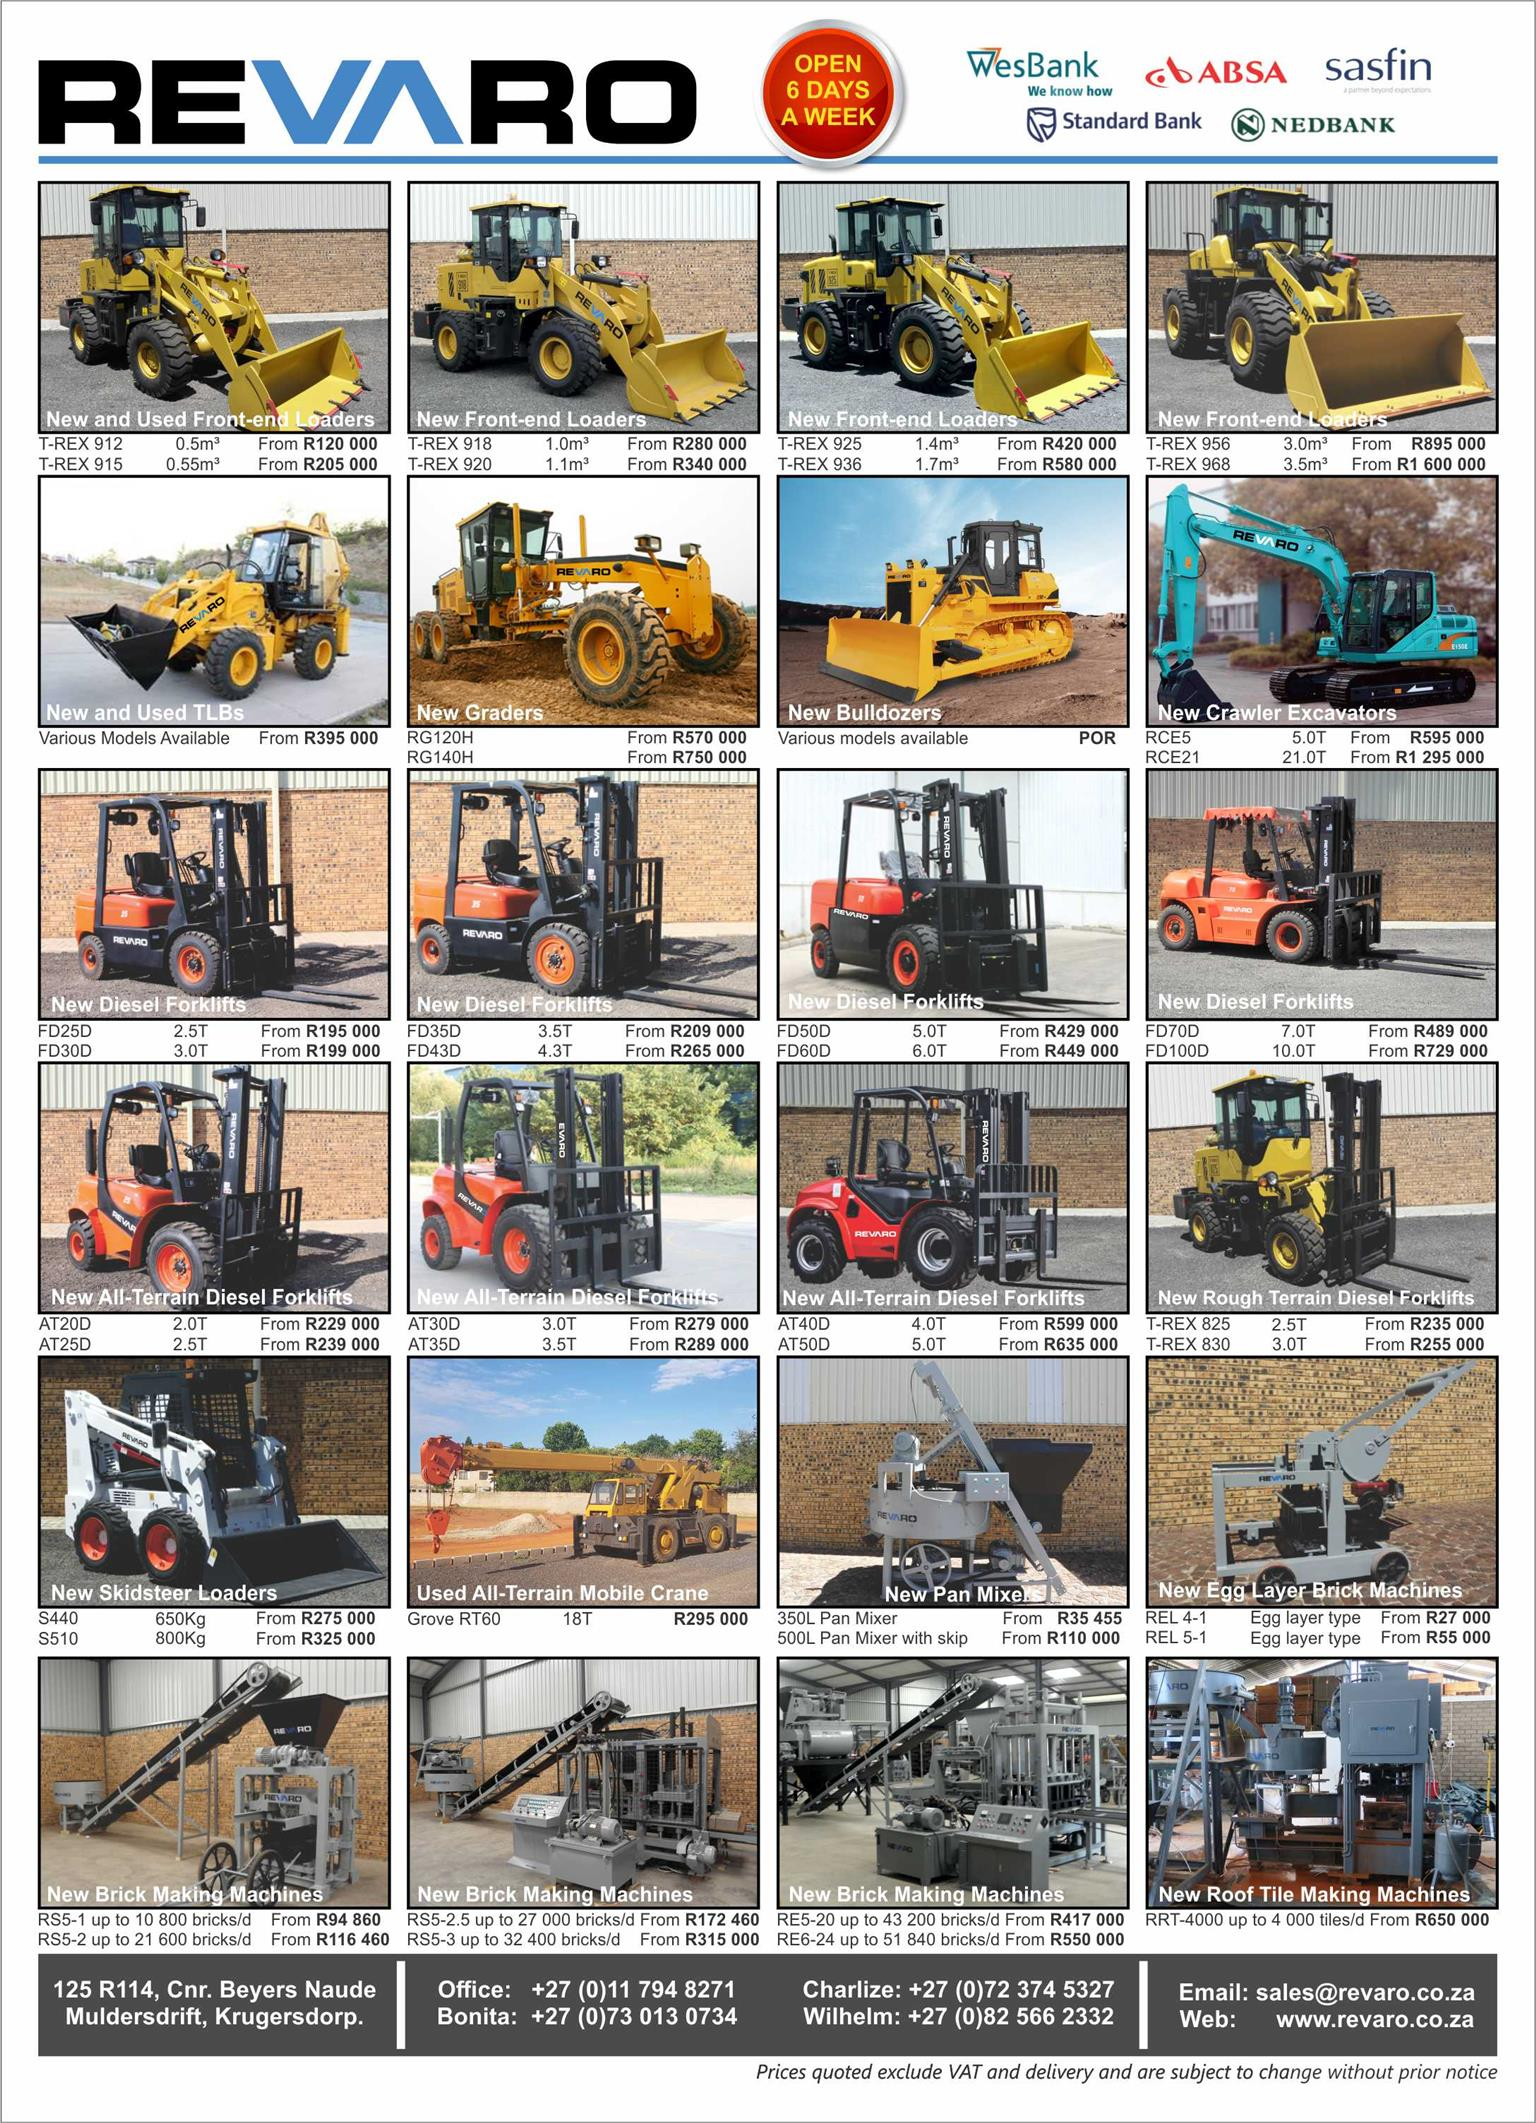 Revaro T-Rex Front End Wheel Loaders T-Rex TLB's loads higher digs deeper and better breakout forceand forklifts